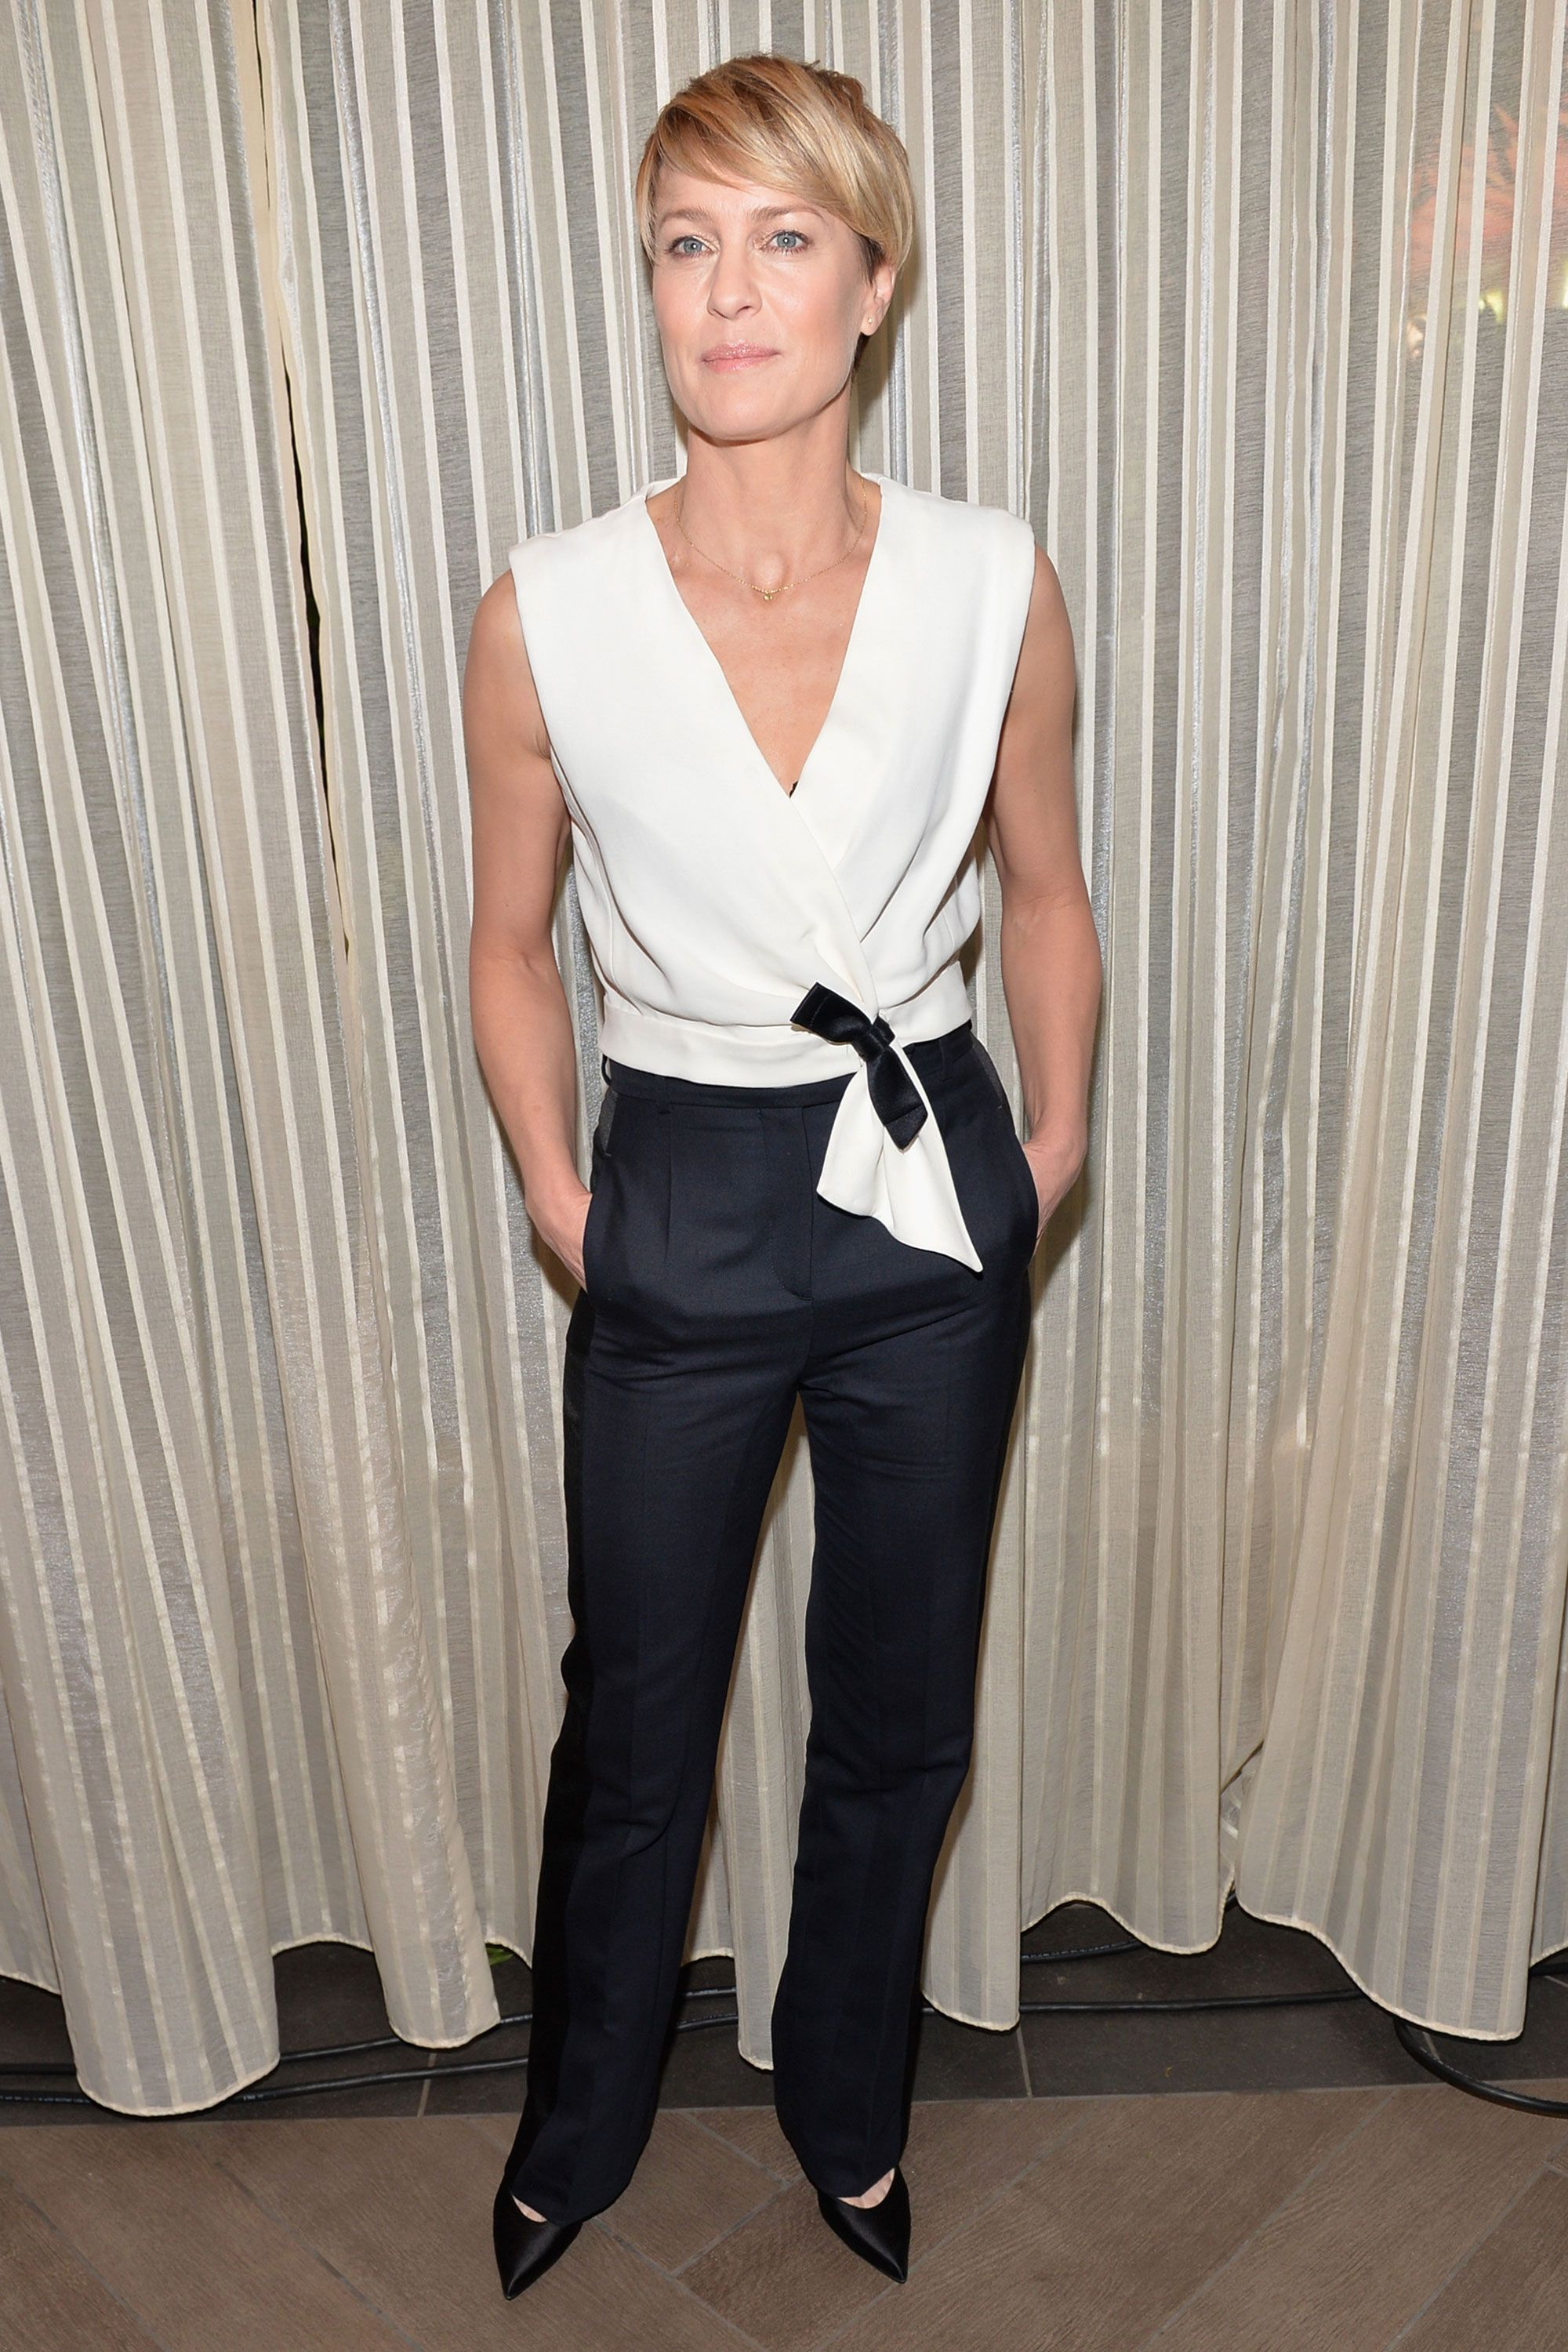 Robin wright style file vestier pinterest robin for Wright style